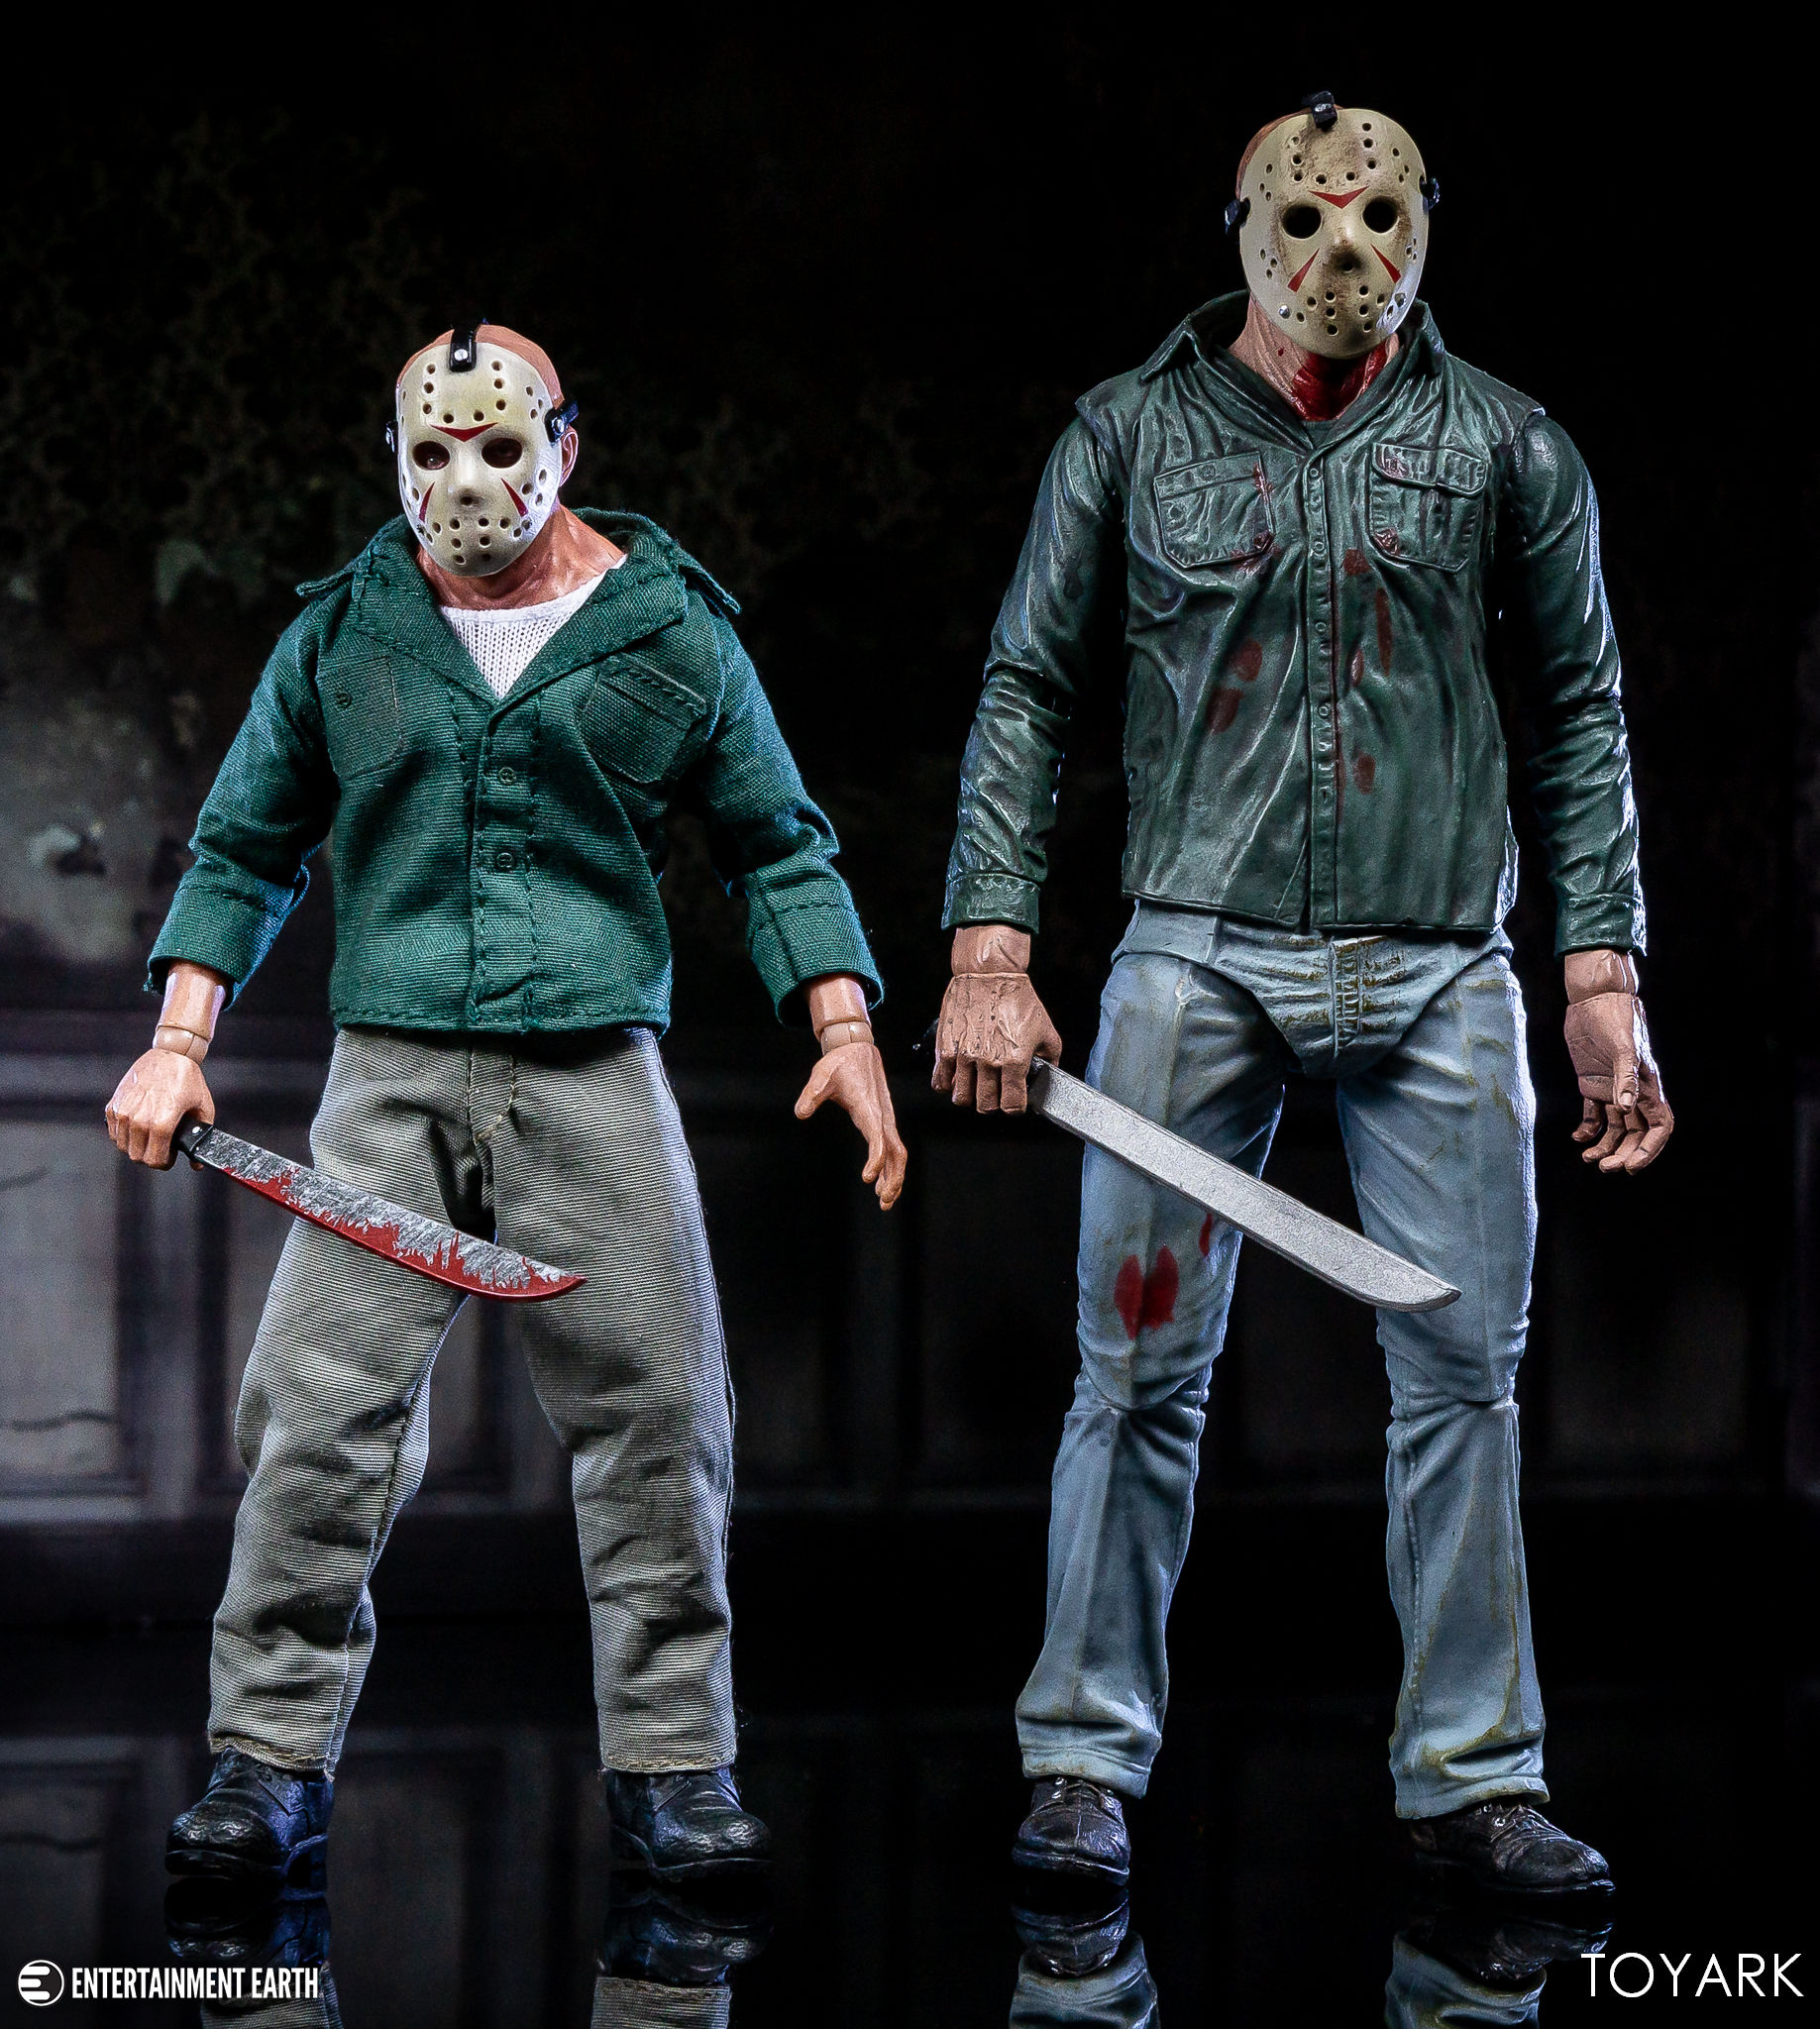 https://news.toyark.com/wp-content/uploads/sites/4/2019/04/One12-Part-3-Jason-Voorhees-051.jpg